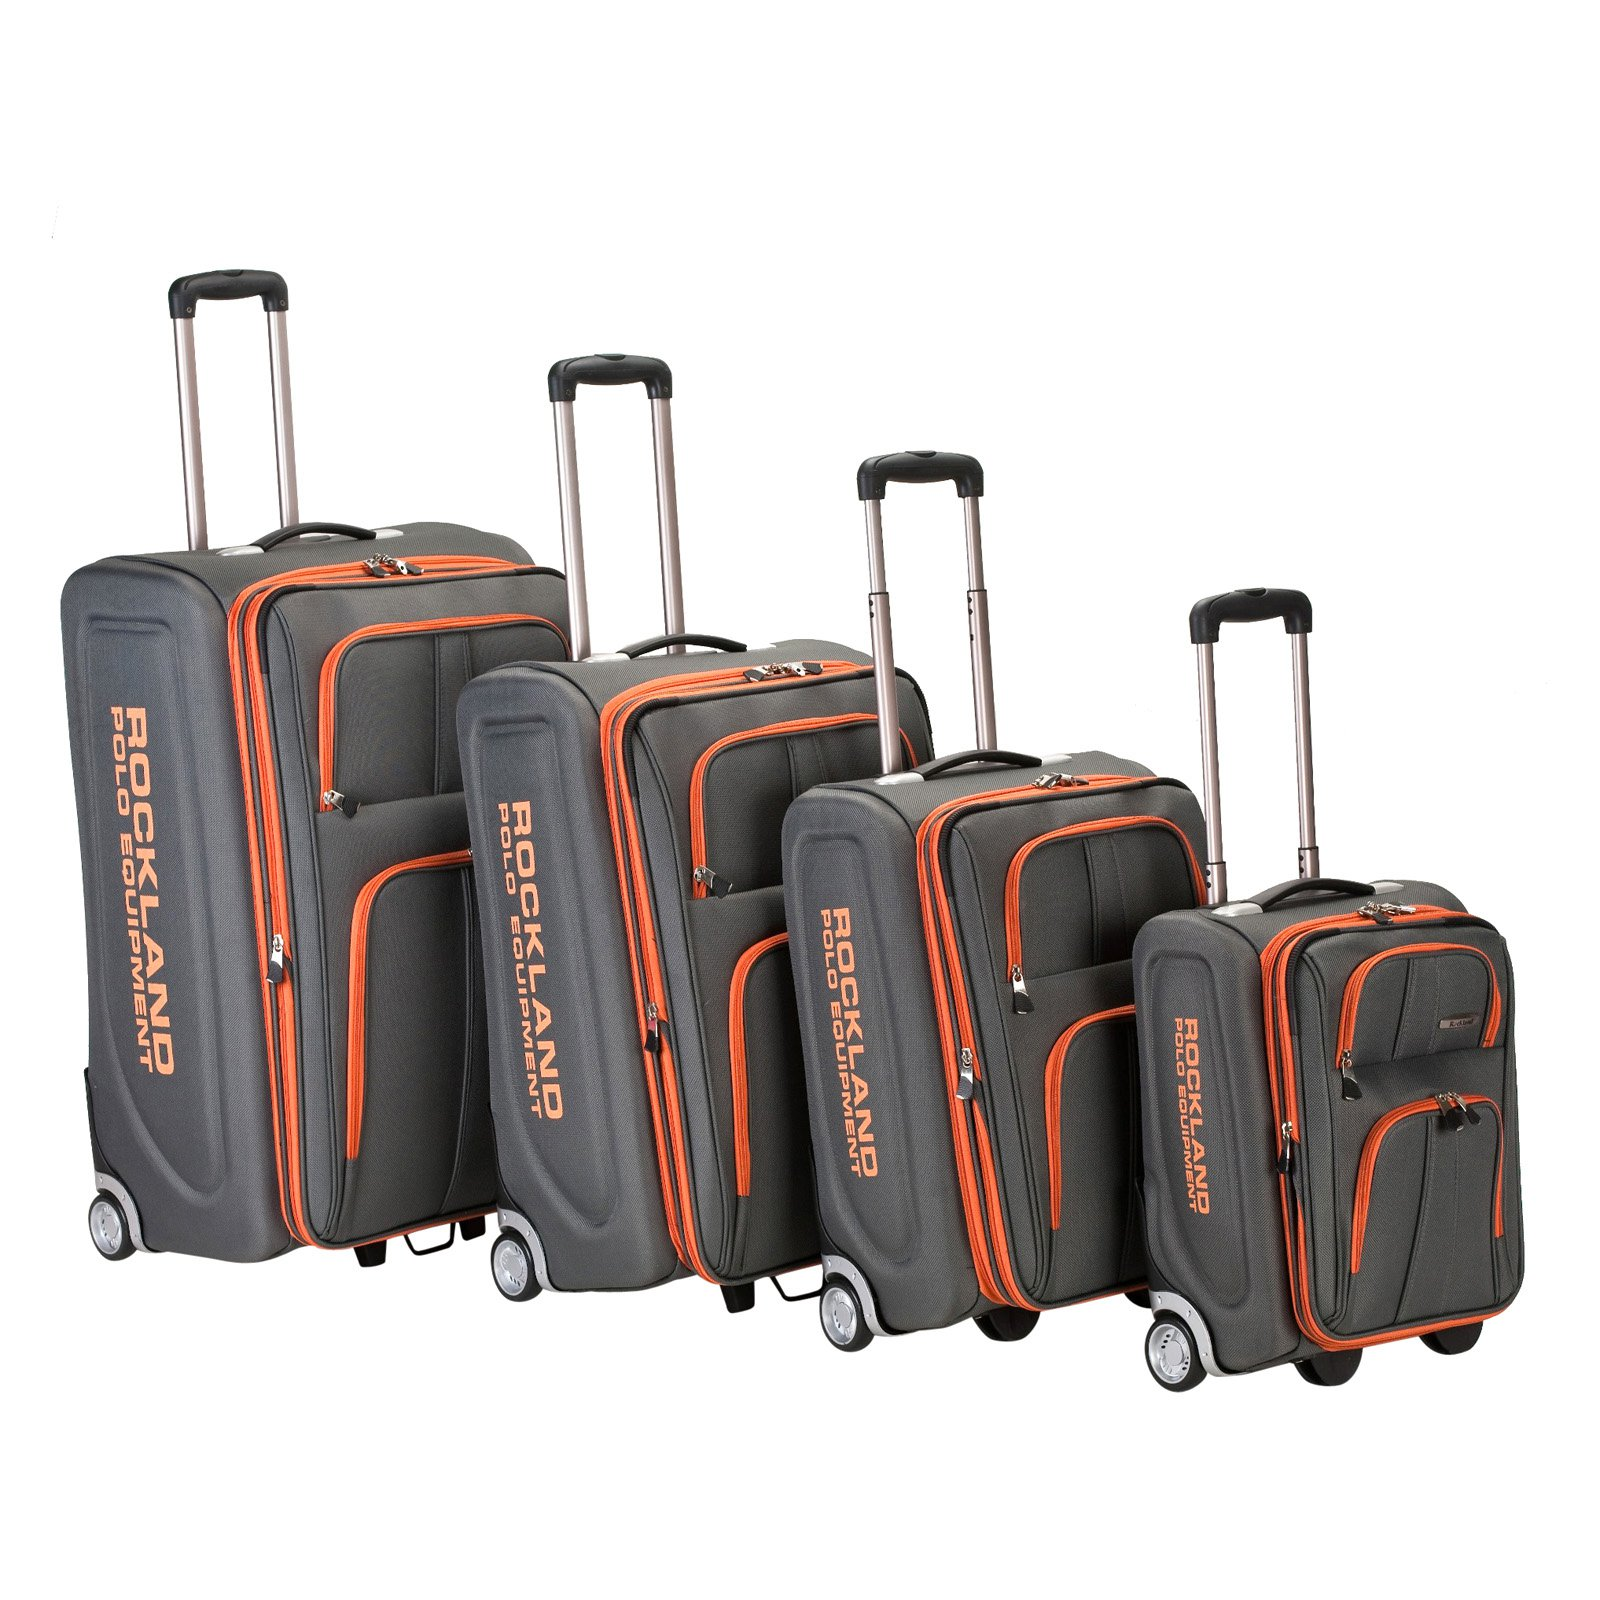 "Rockland Luggage Varsity F120 4-Piece Softside Expandable Luggage Set (30"", 26"", 22"" & 18"" Suitcase)"